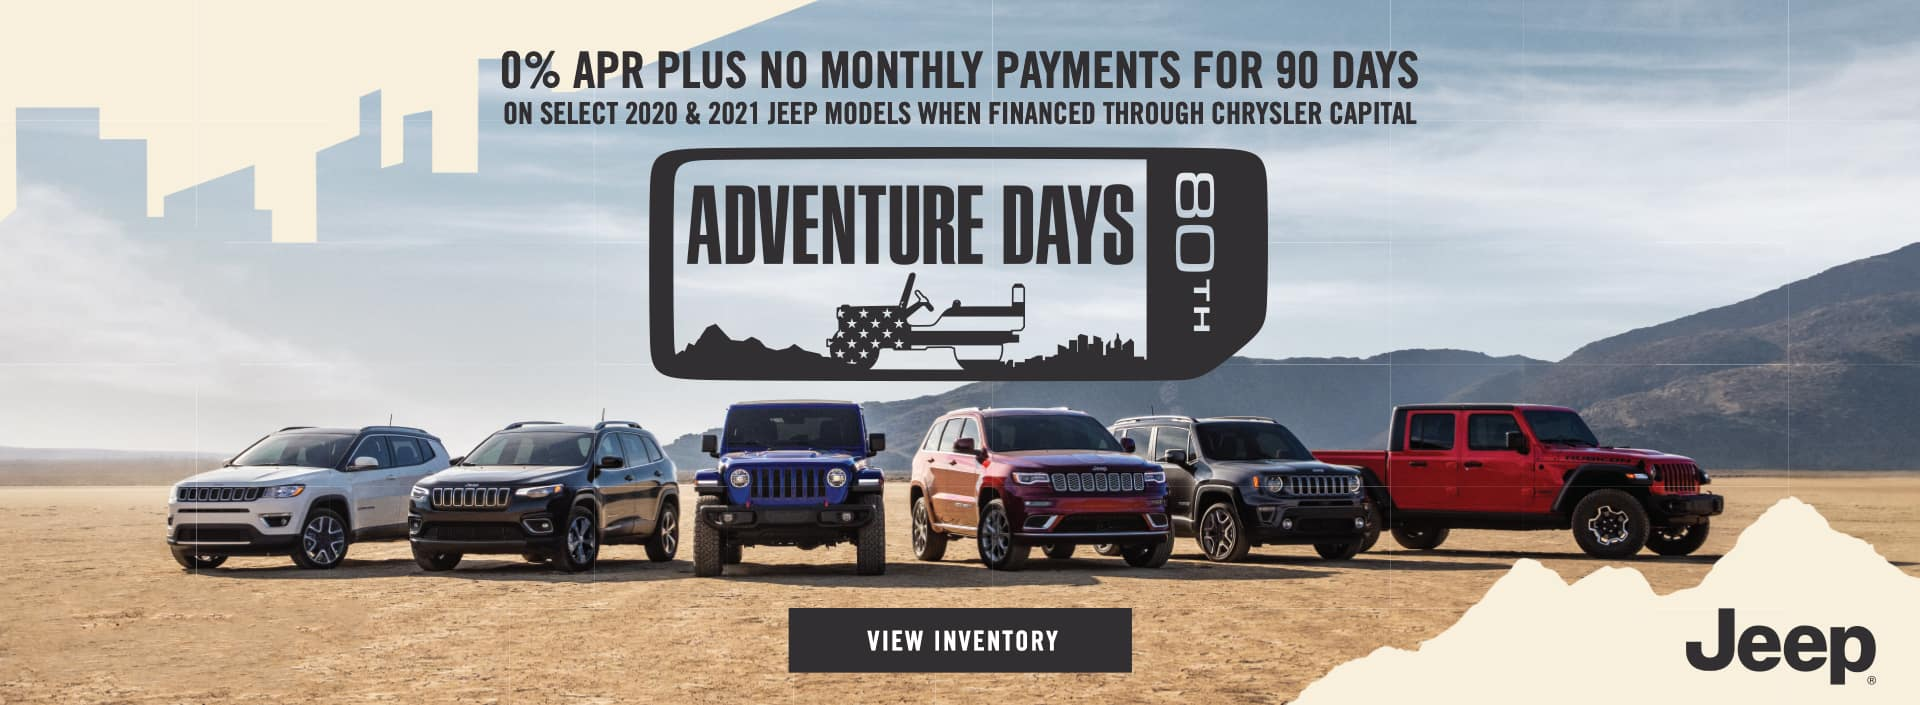 EAG_Jeep_0% APR Plus no monthly payments for 90 days_